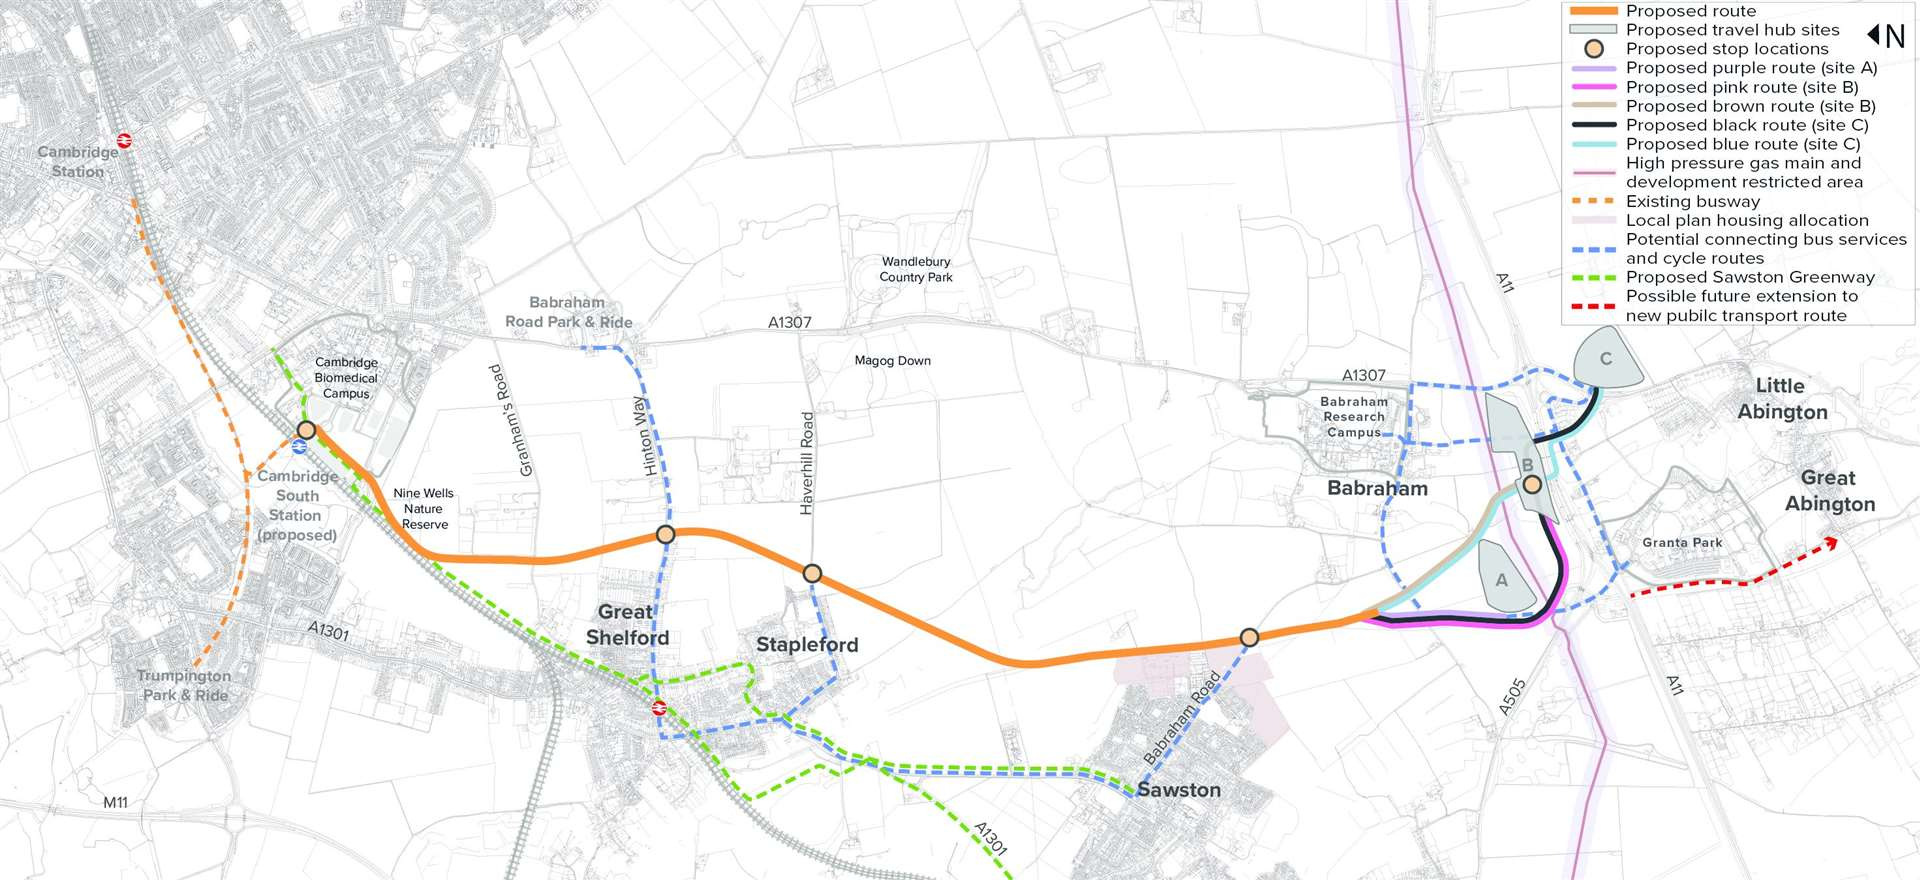 The proposed new public transport links between a new travel hub near the A11/A1307/A505 to Cambridge Biomedical Campus, via Great Shelford, Stapleford and Sawston. Contributed graphic